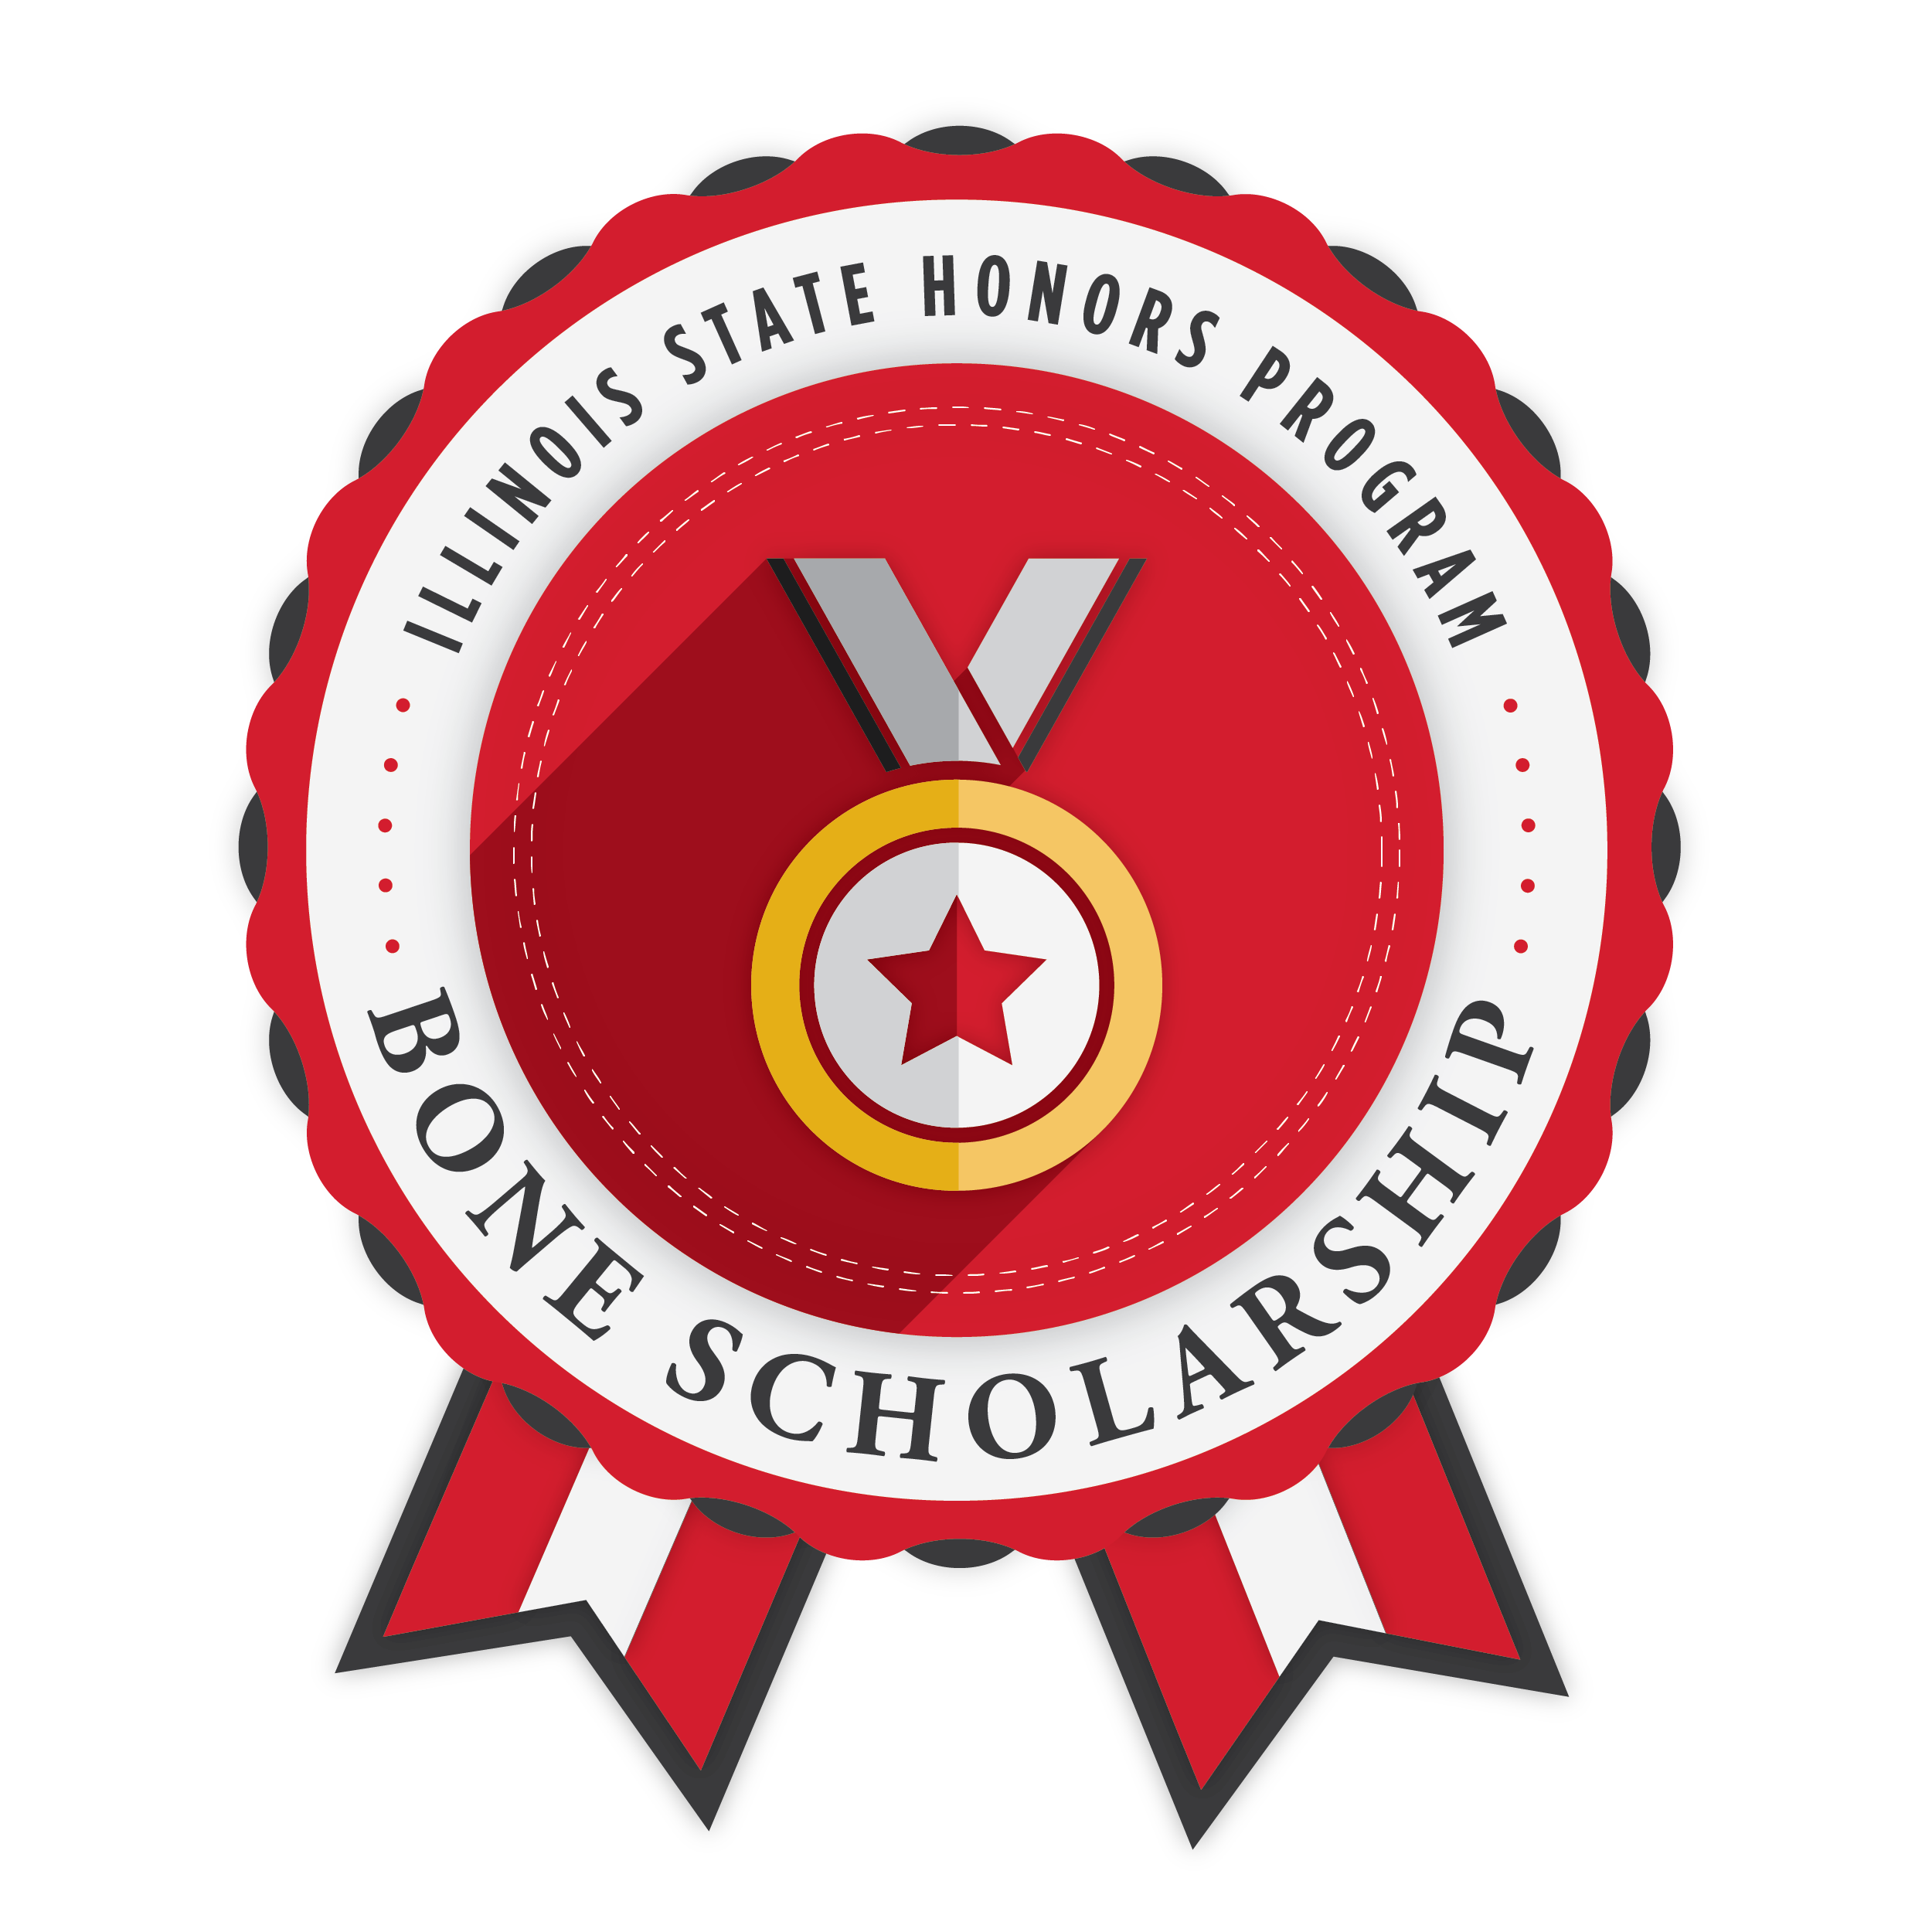 Badge for the Bone Scholarship, with the words Illinois State Honors Program.